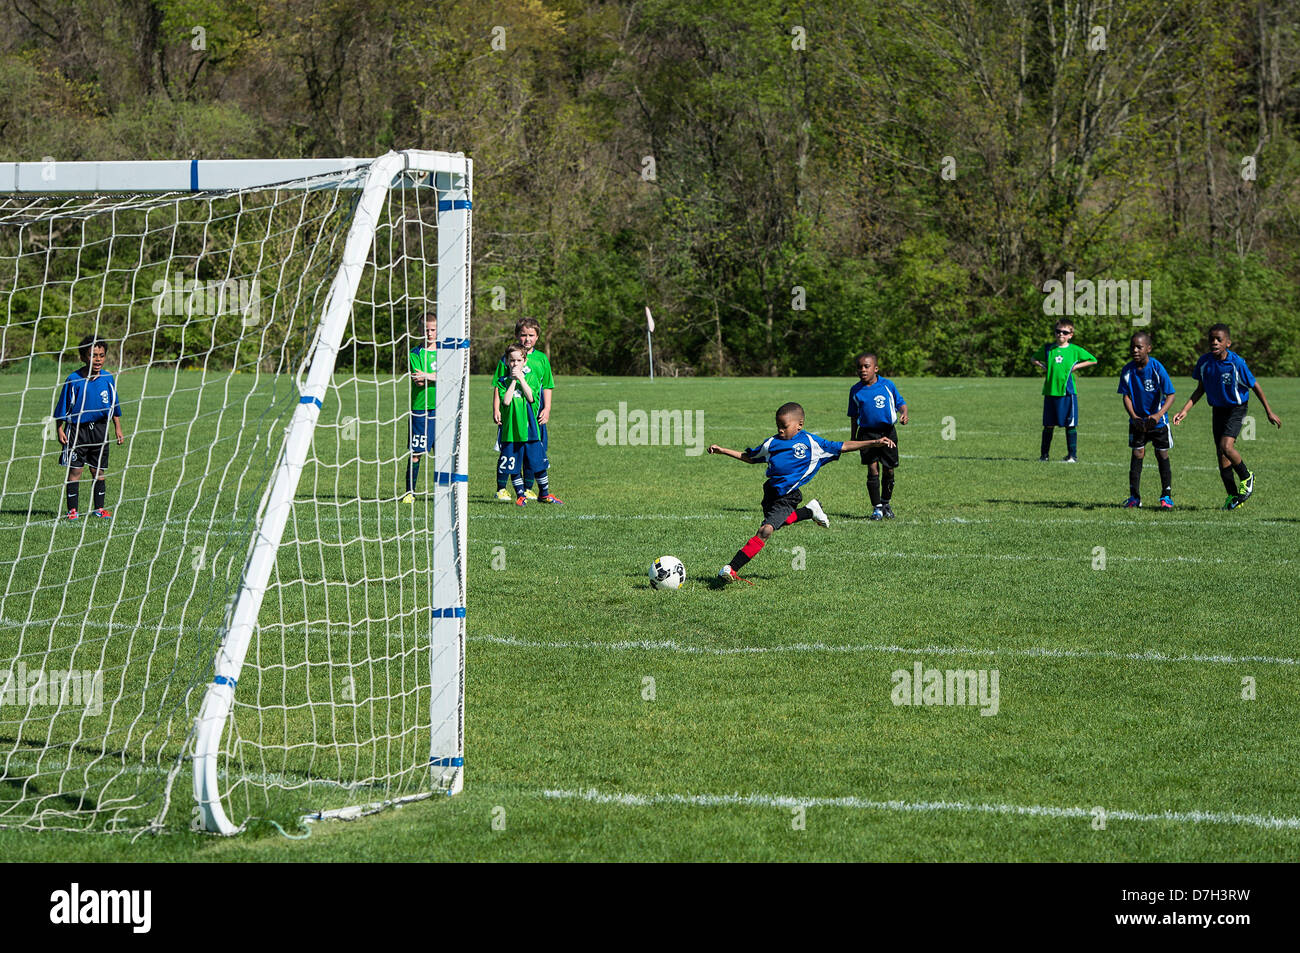 Young boy takes a penalty kick during soccer match. - Stock Image